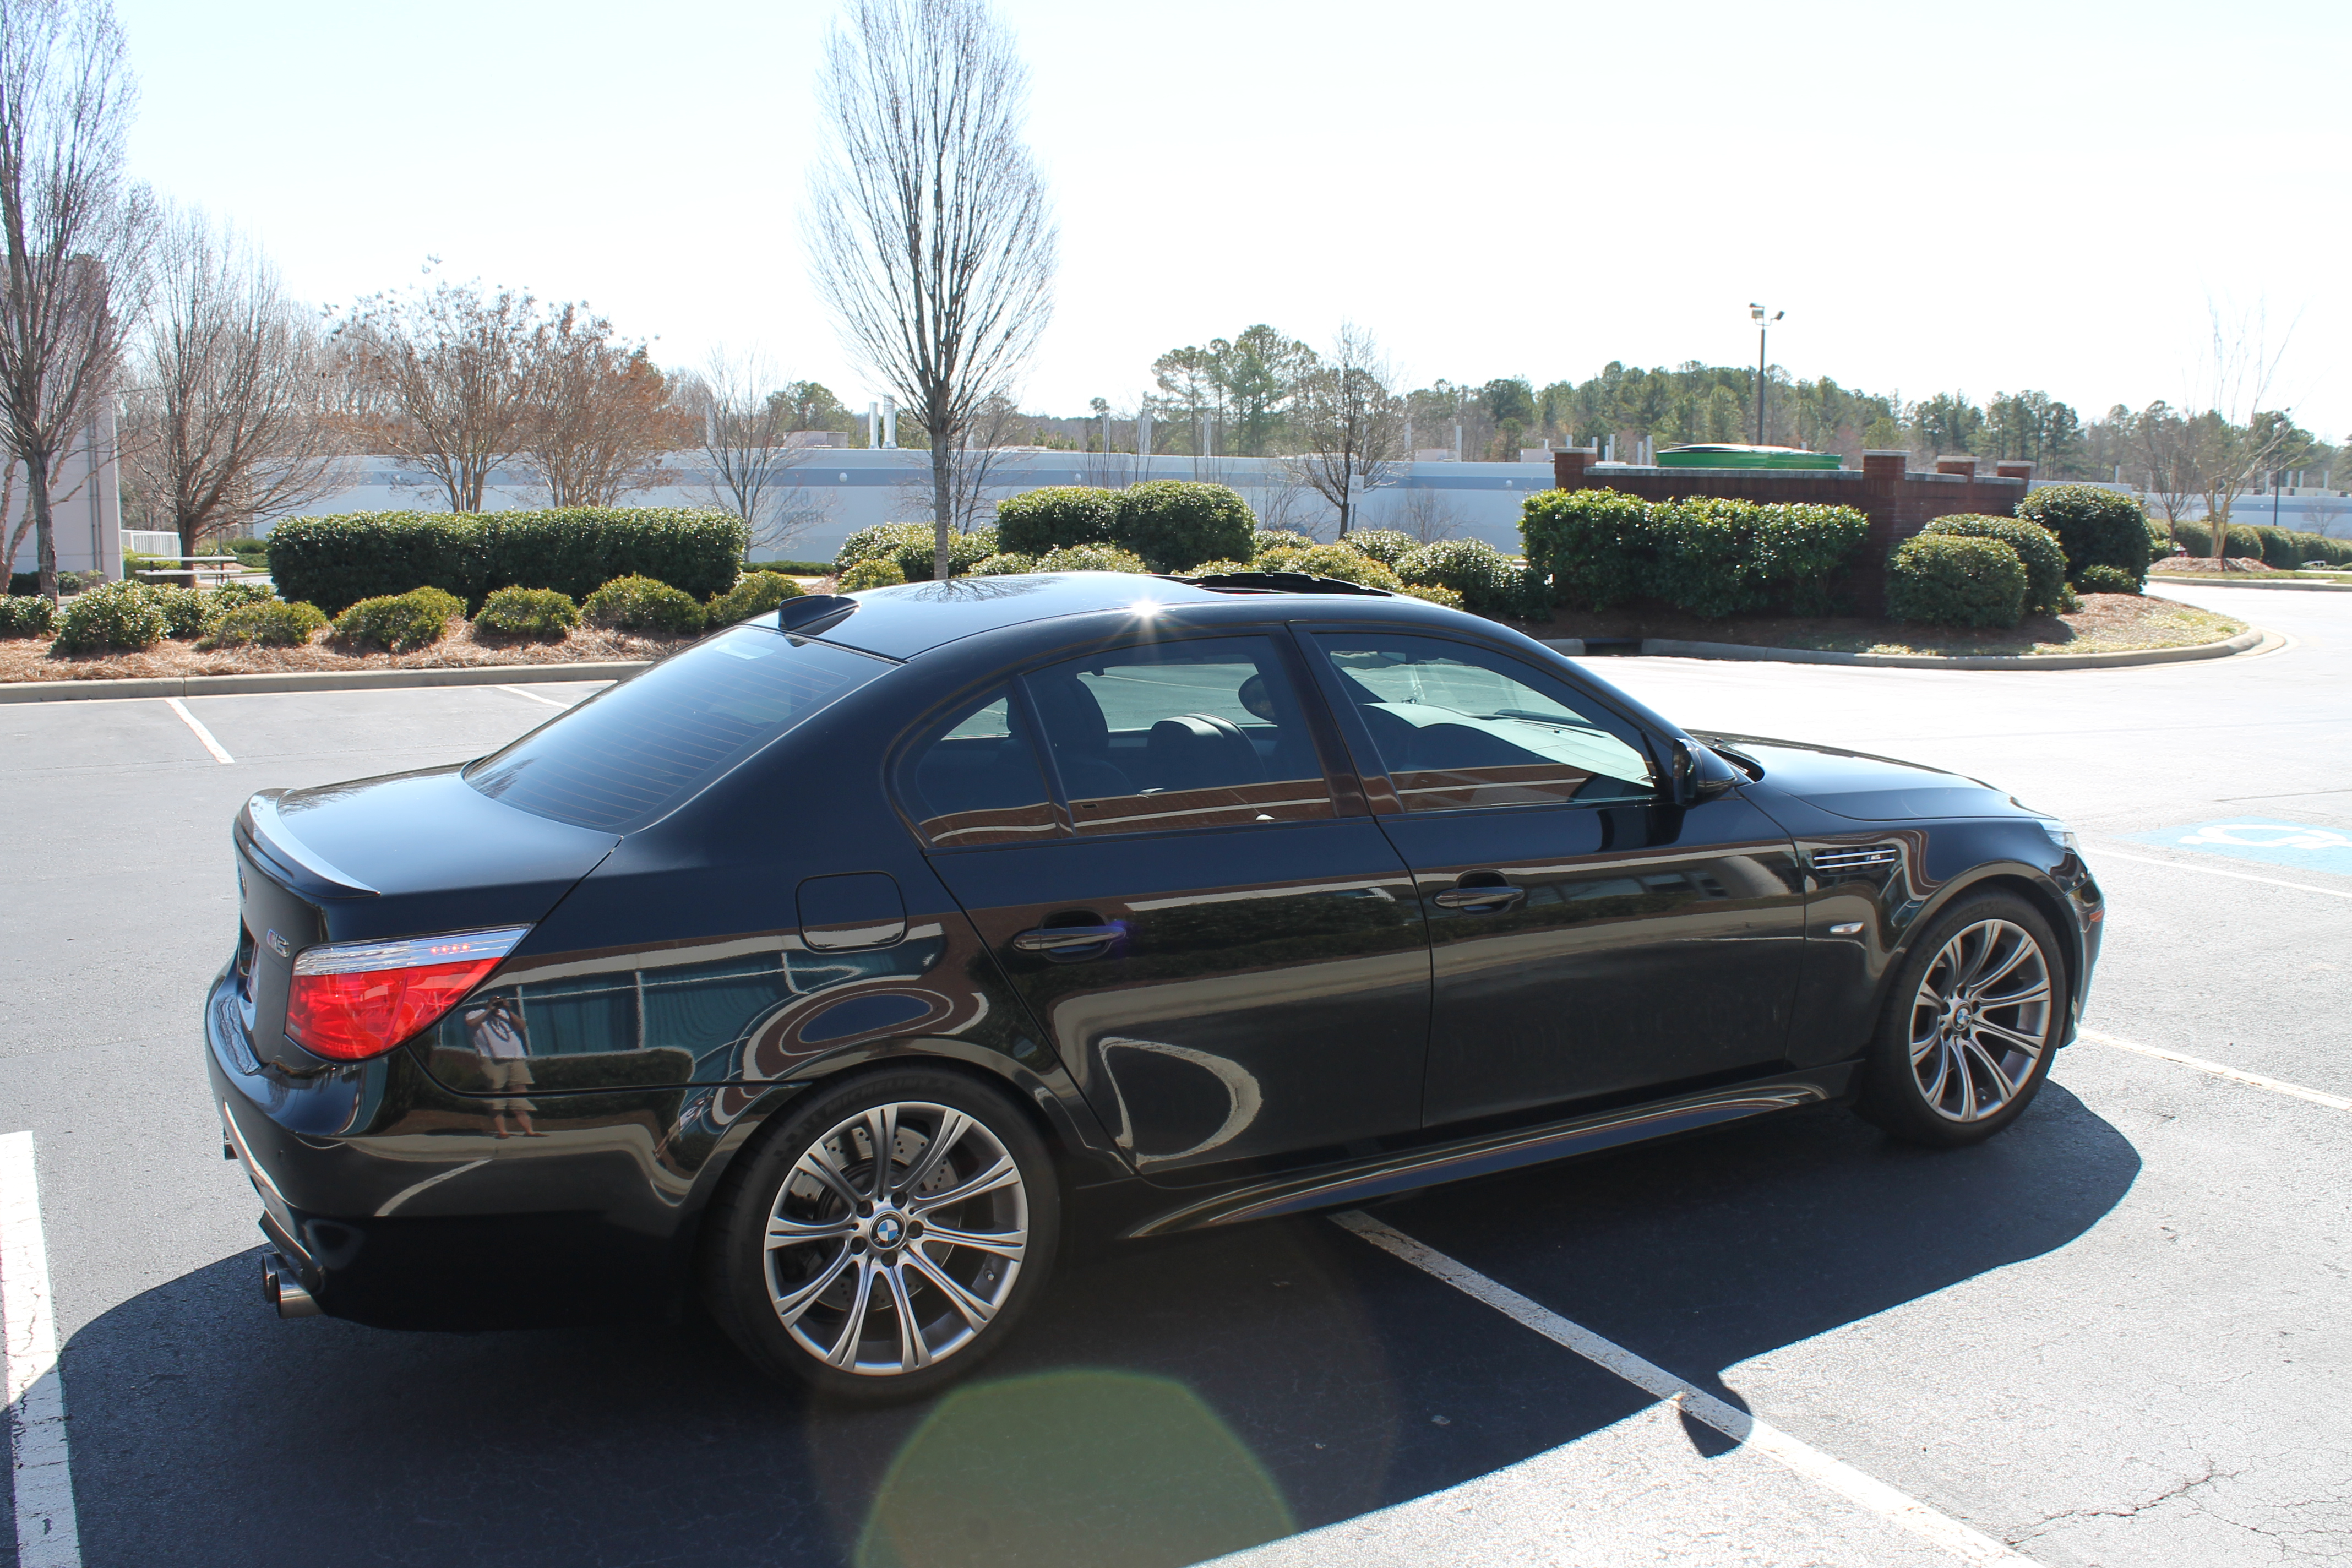 e60 03 10 for sale 2010 bmw m5 for sale with dinan exhast and euro smg bmw m5 forum and m6. Black Bedroom Furniture Sets. Home Design Ideas